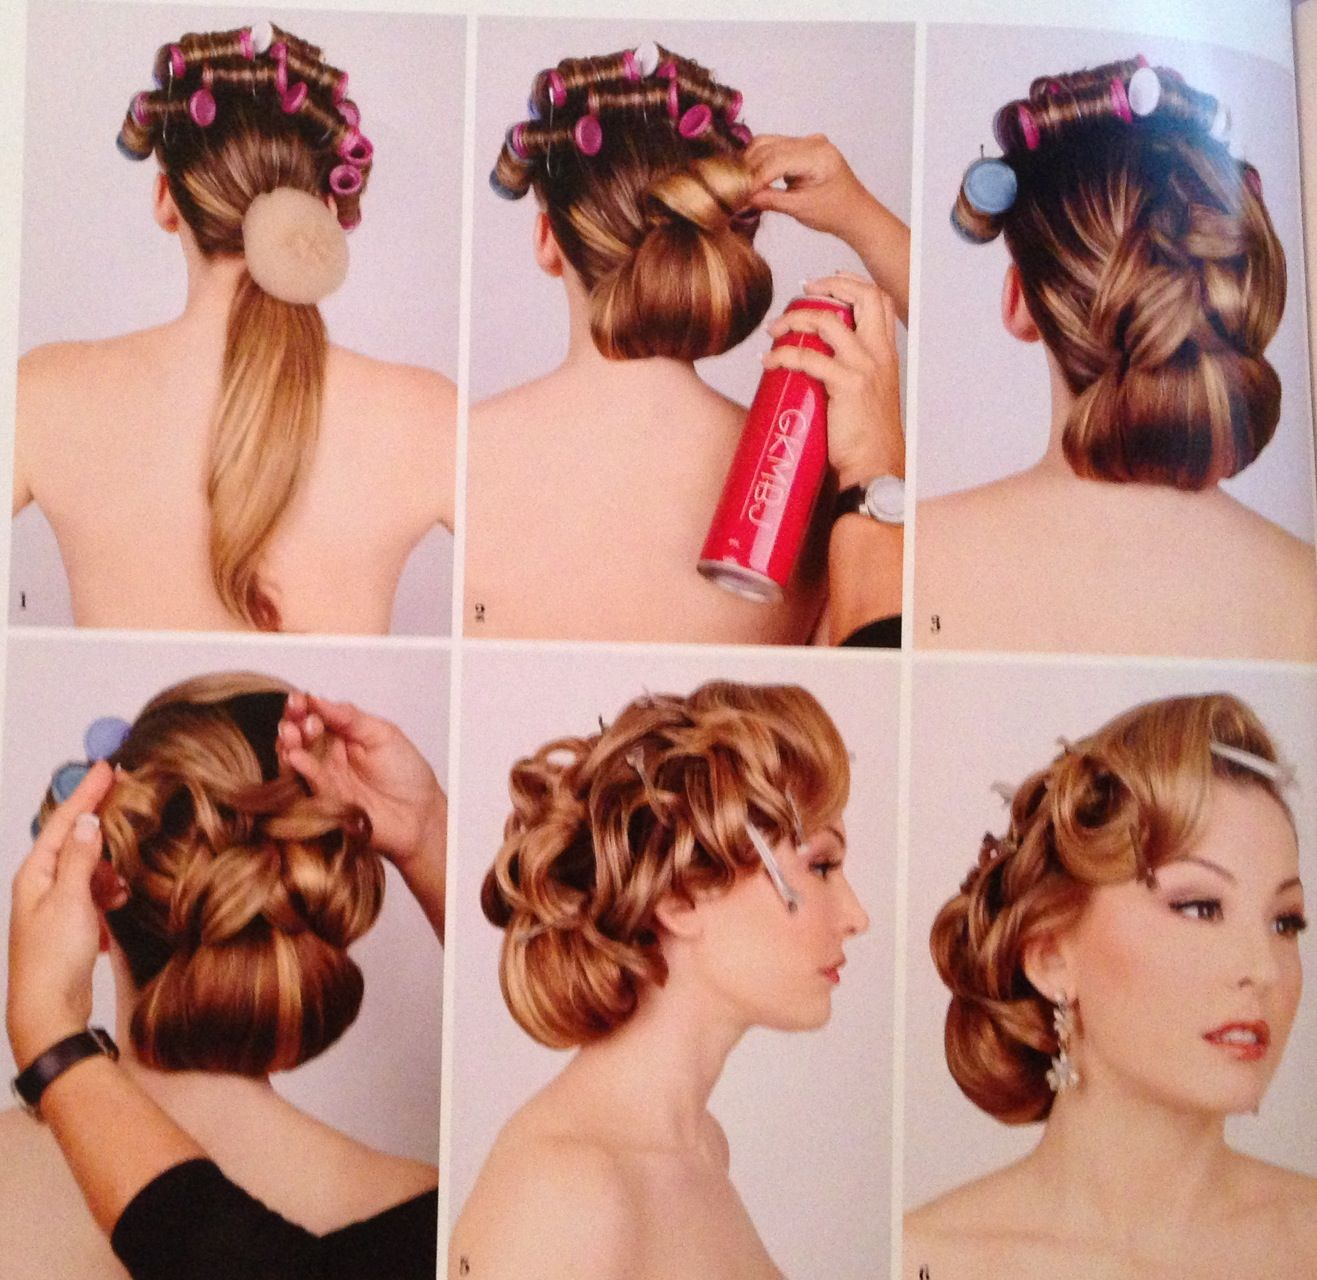 Pin By Fotima Siddik On Tips Ideas 1950s Hairstyles For Long Hair 50s Hairstyles 1950s Hairstyles